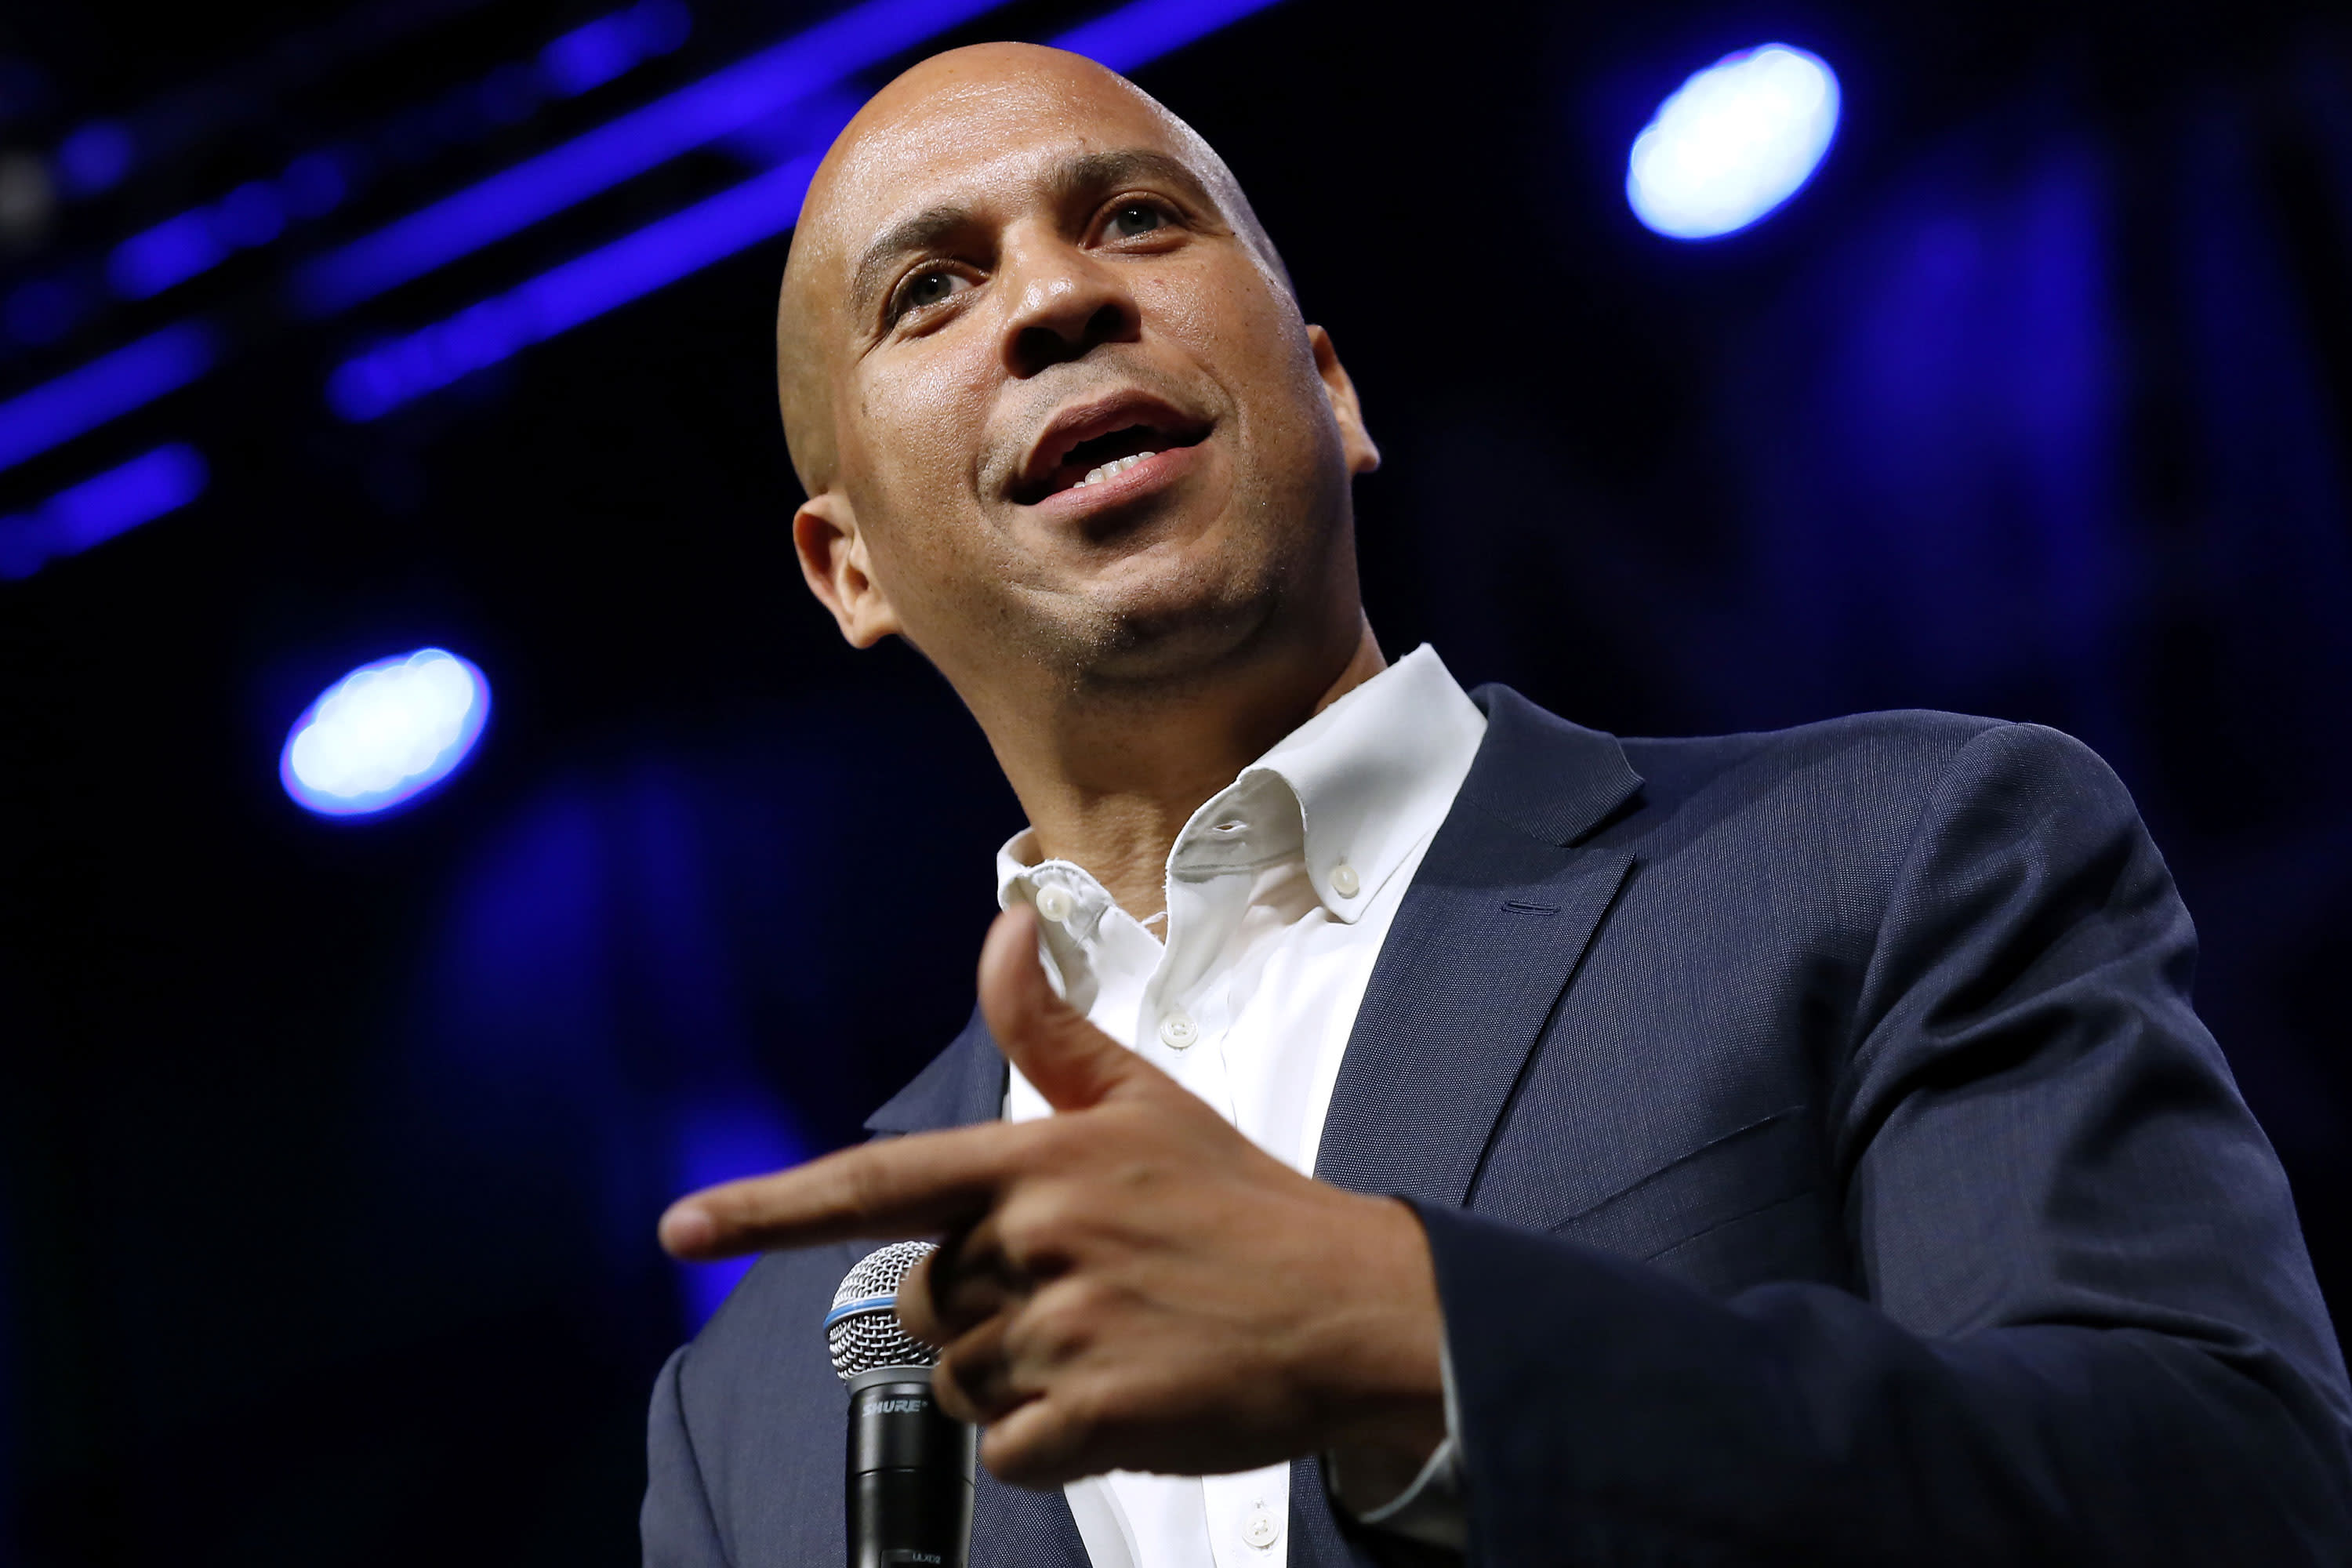 Cory Booker aims to reignite stock-buyback fight on the 2020 campaign trail by re-introducing old bill